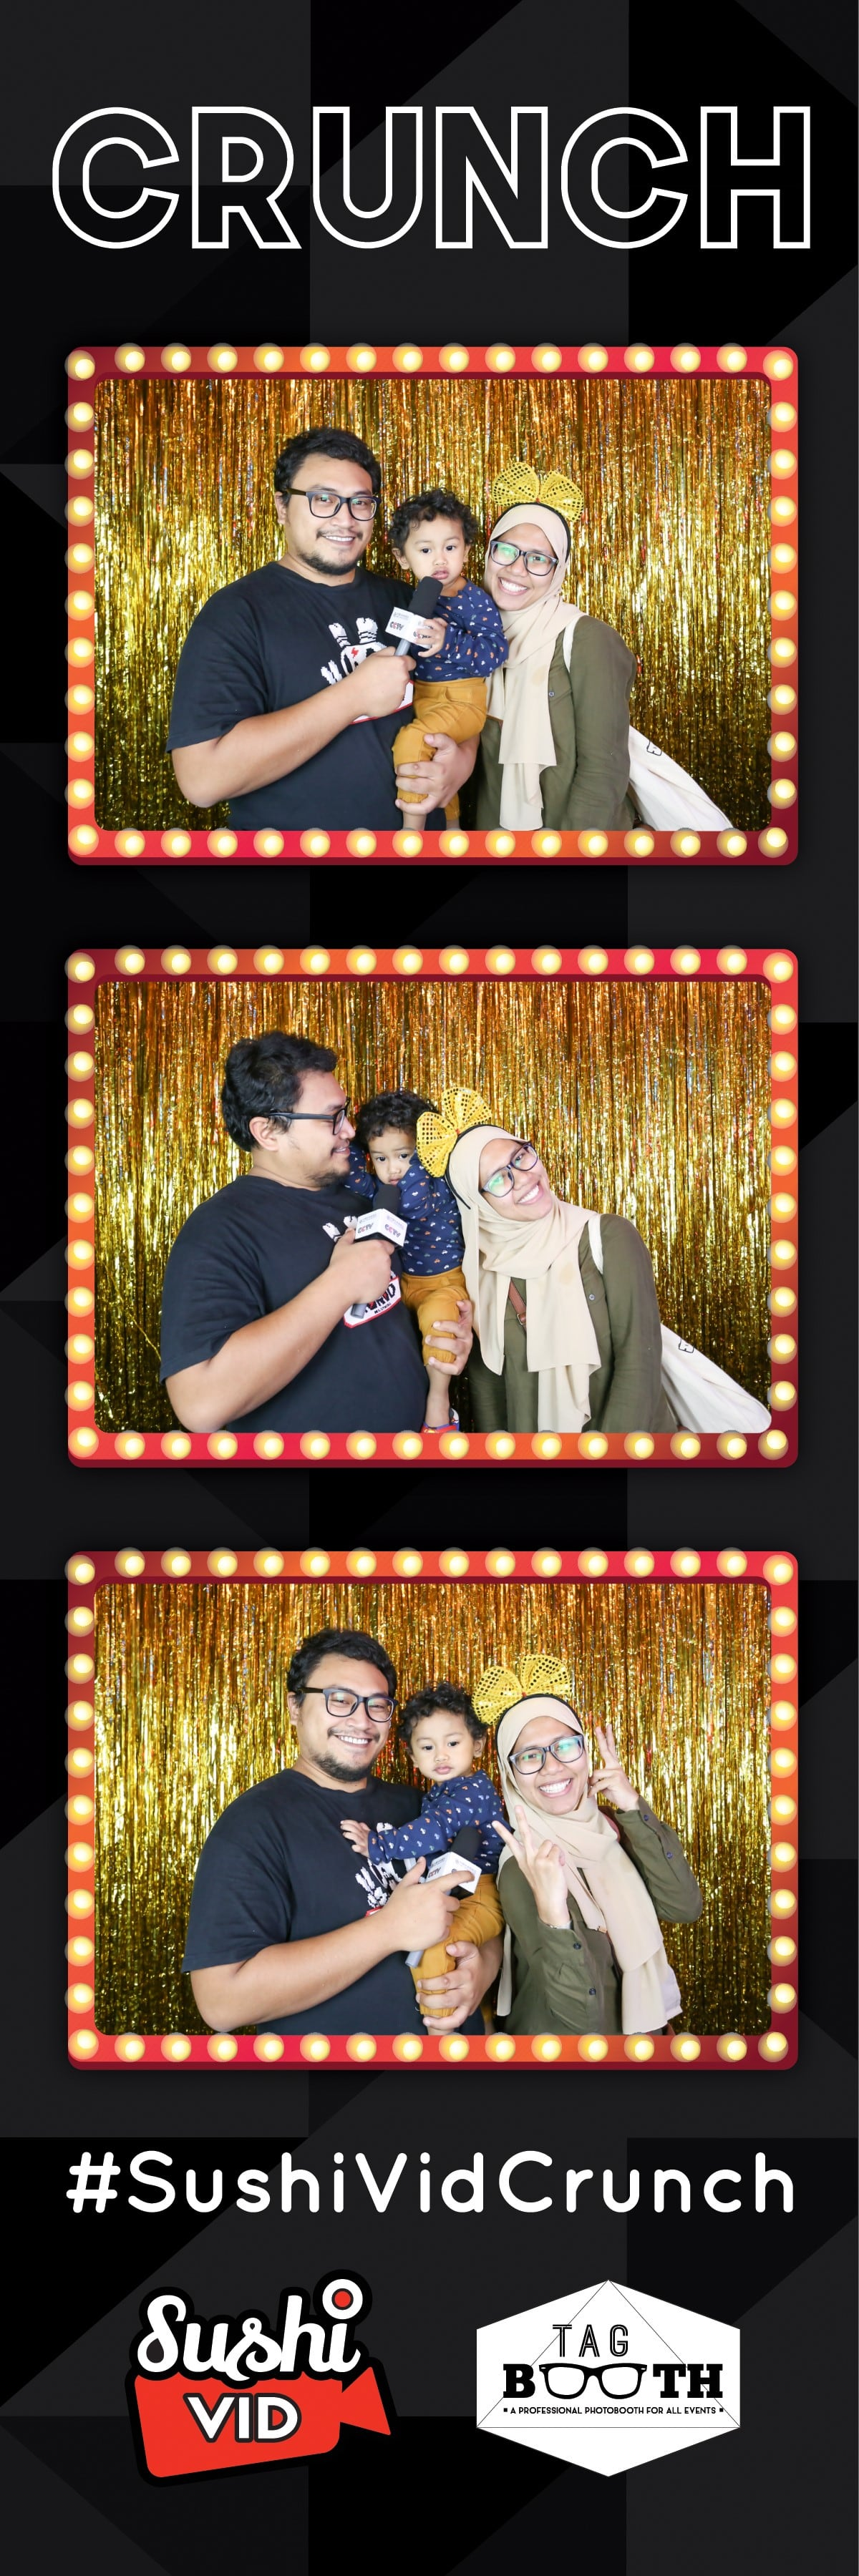 Sushivid+crunch+tagbooth1+24